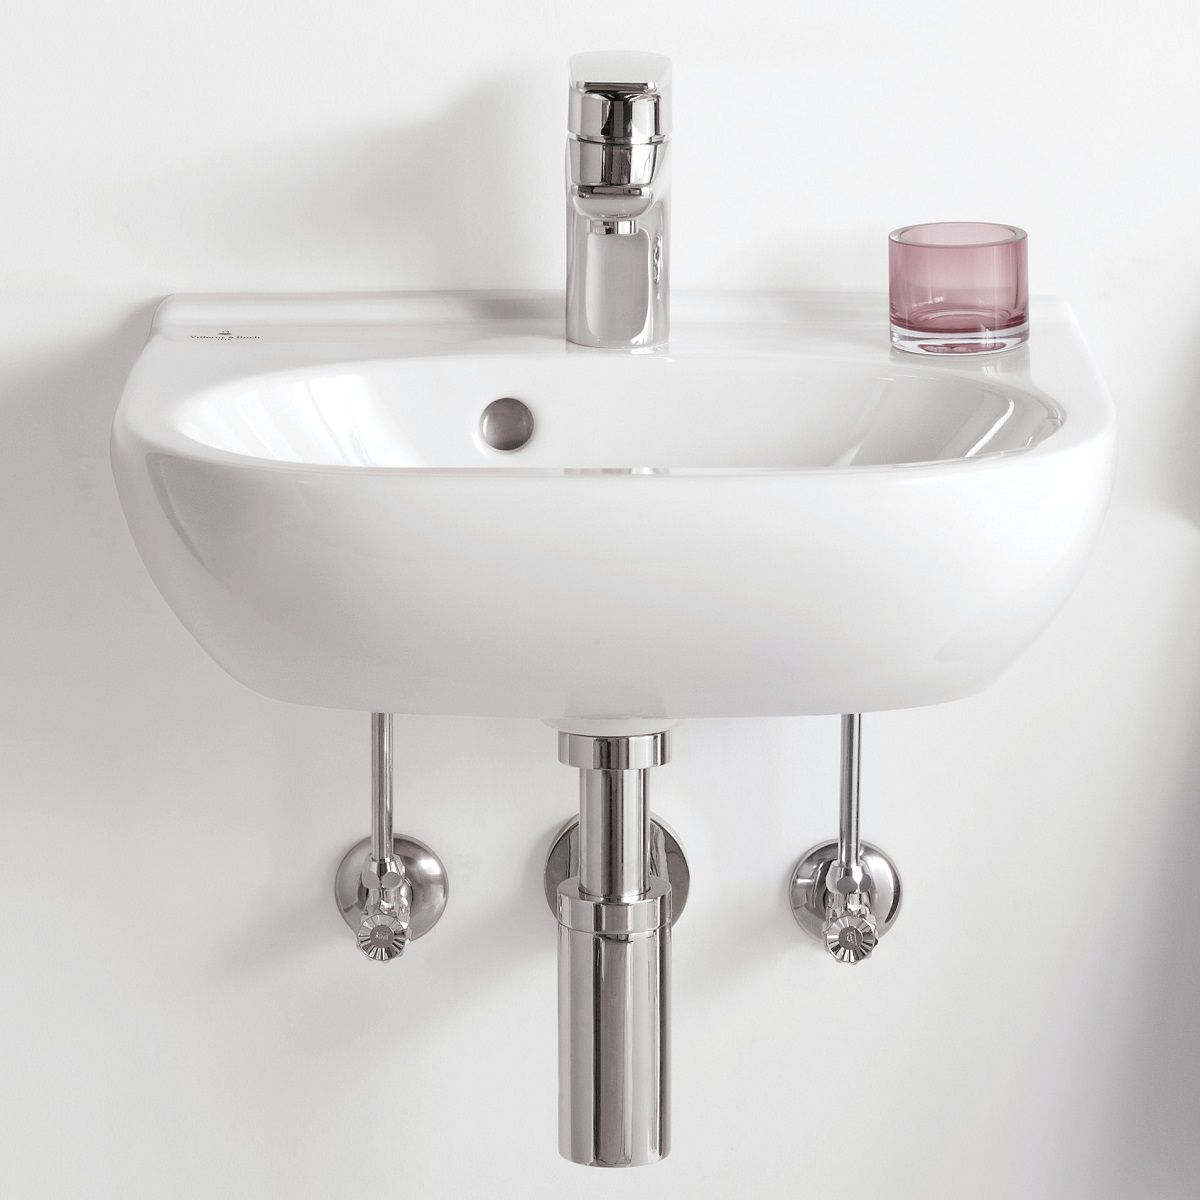 Villeroy and Boch O.Novo Cloakroom Basin